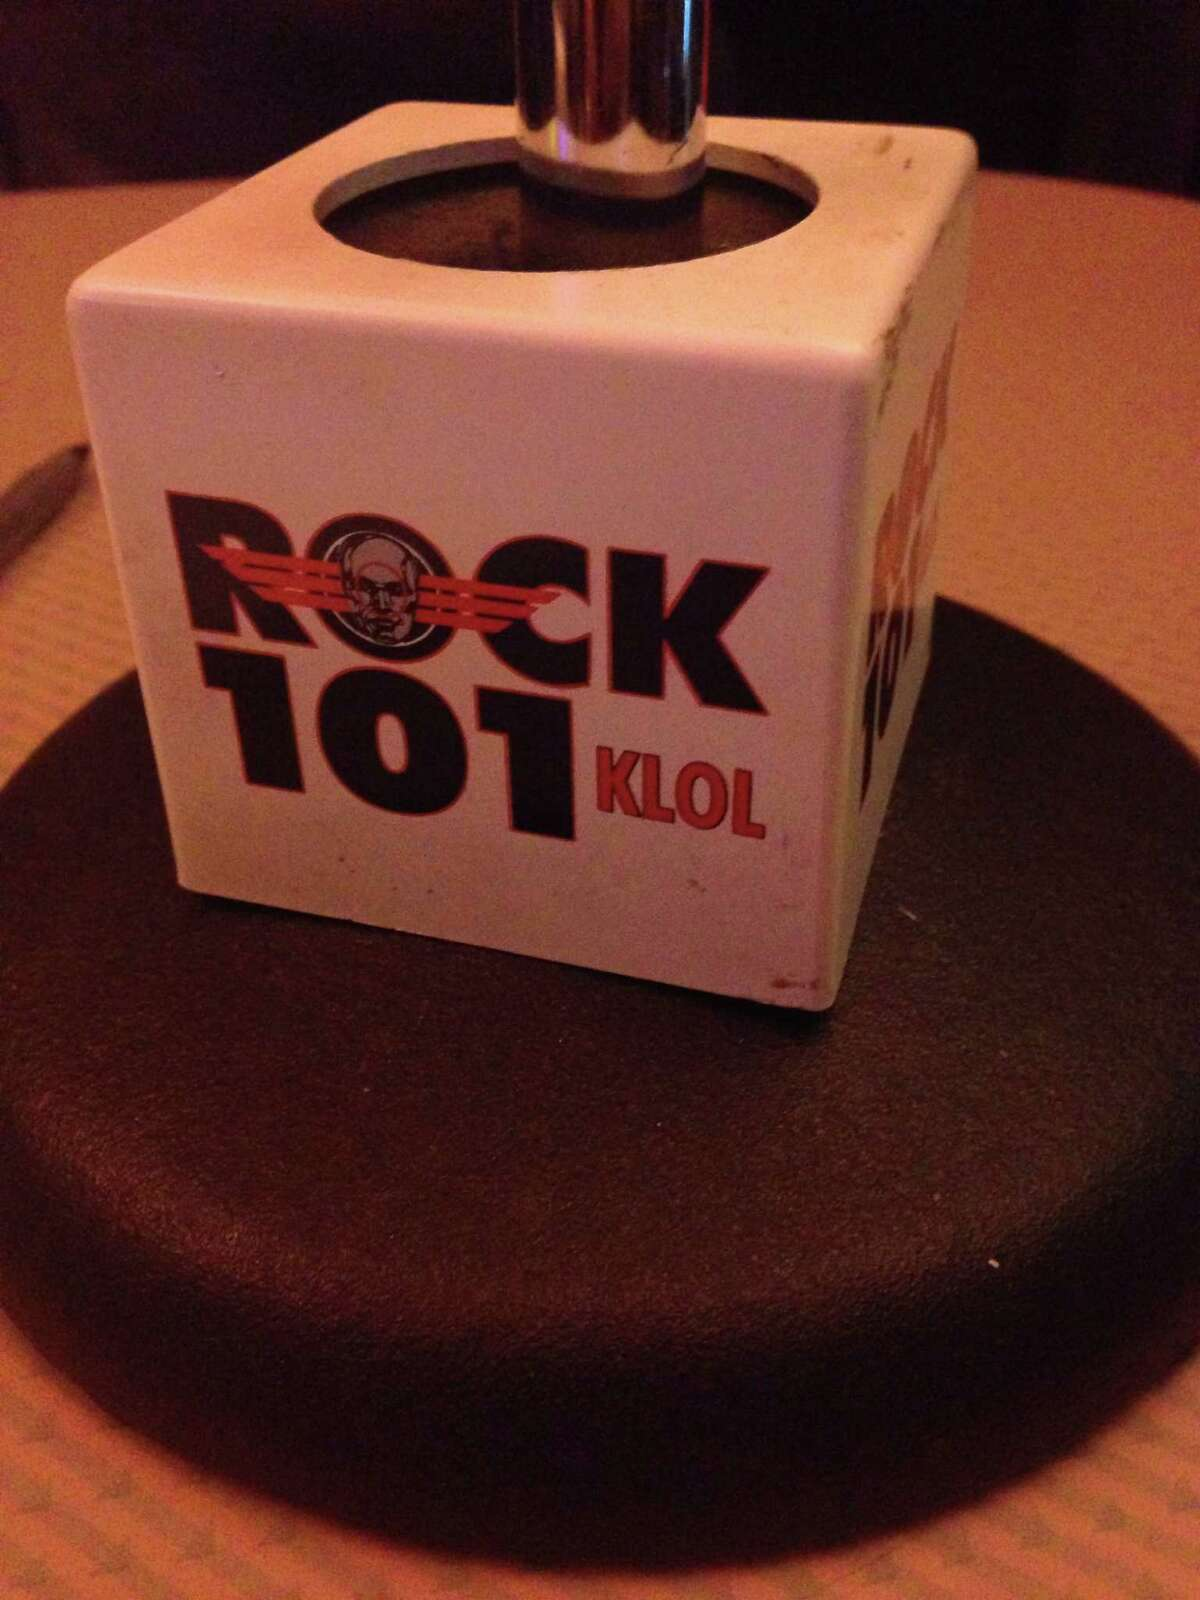 Wednesday night on his radio show, former KLOL jock Outlaw Dave Andrews talked about the last day of the iconic Houston rock station. This mic flag is one of Andrews' treasured artifacts from the station.